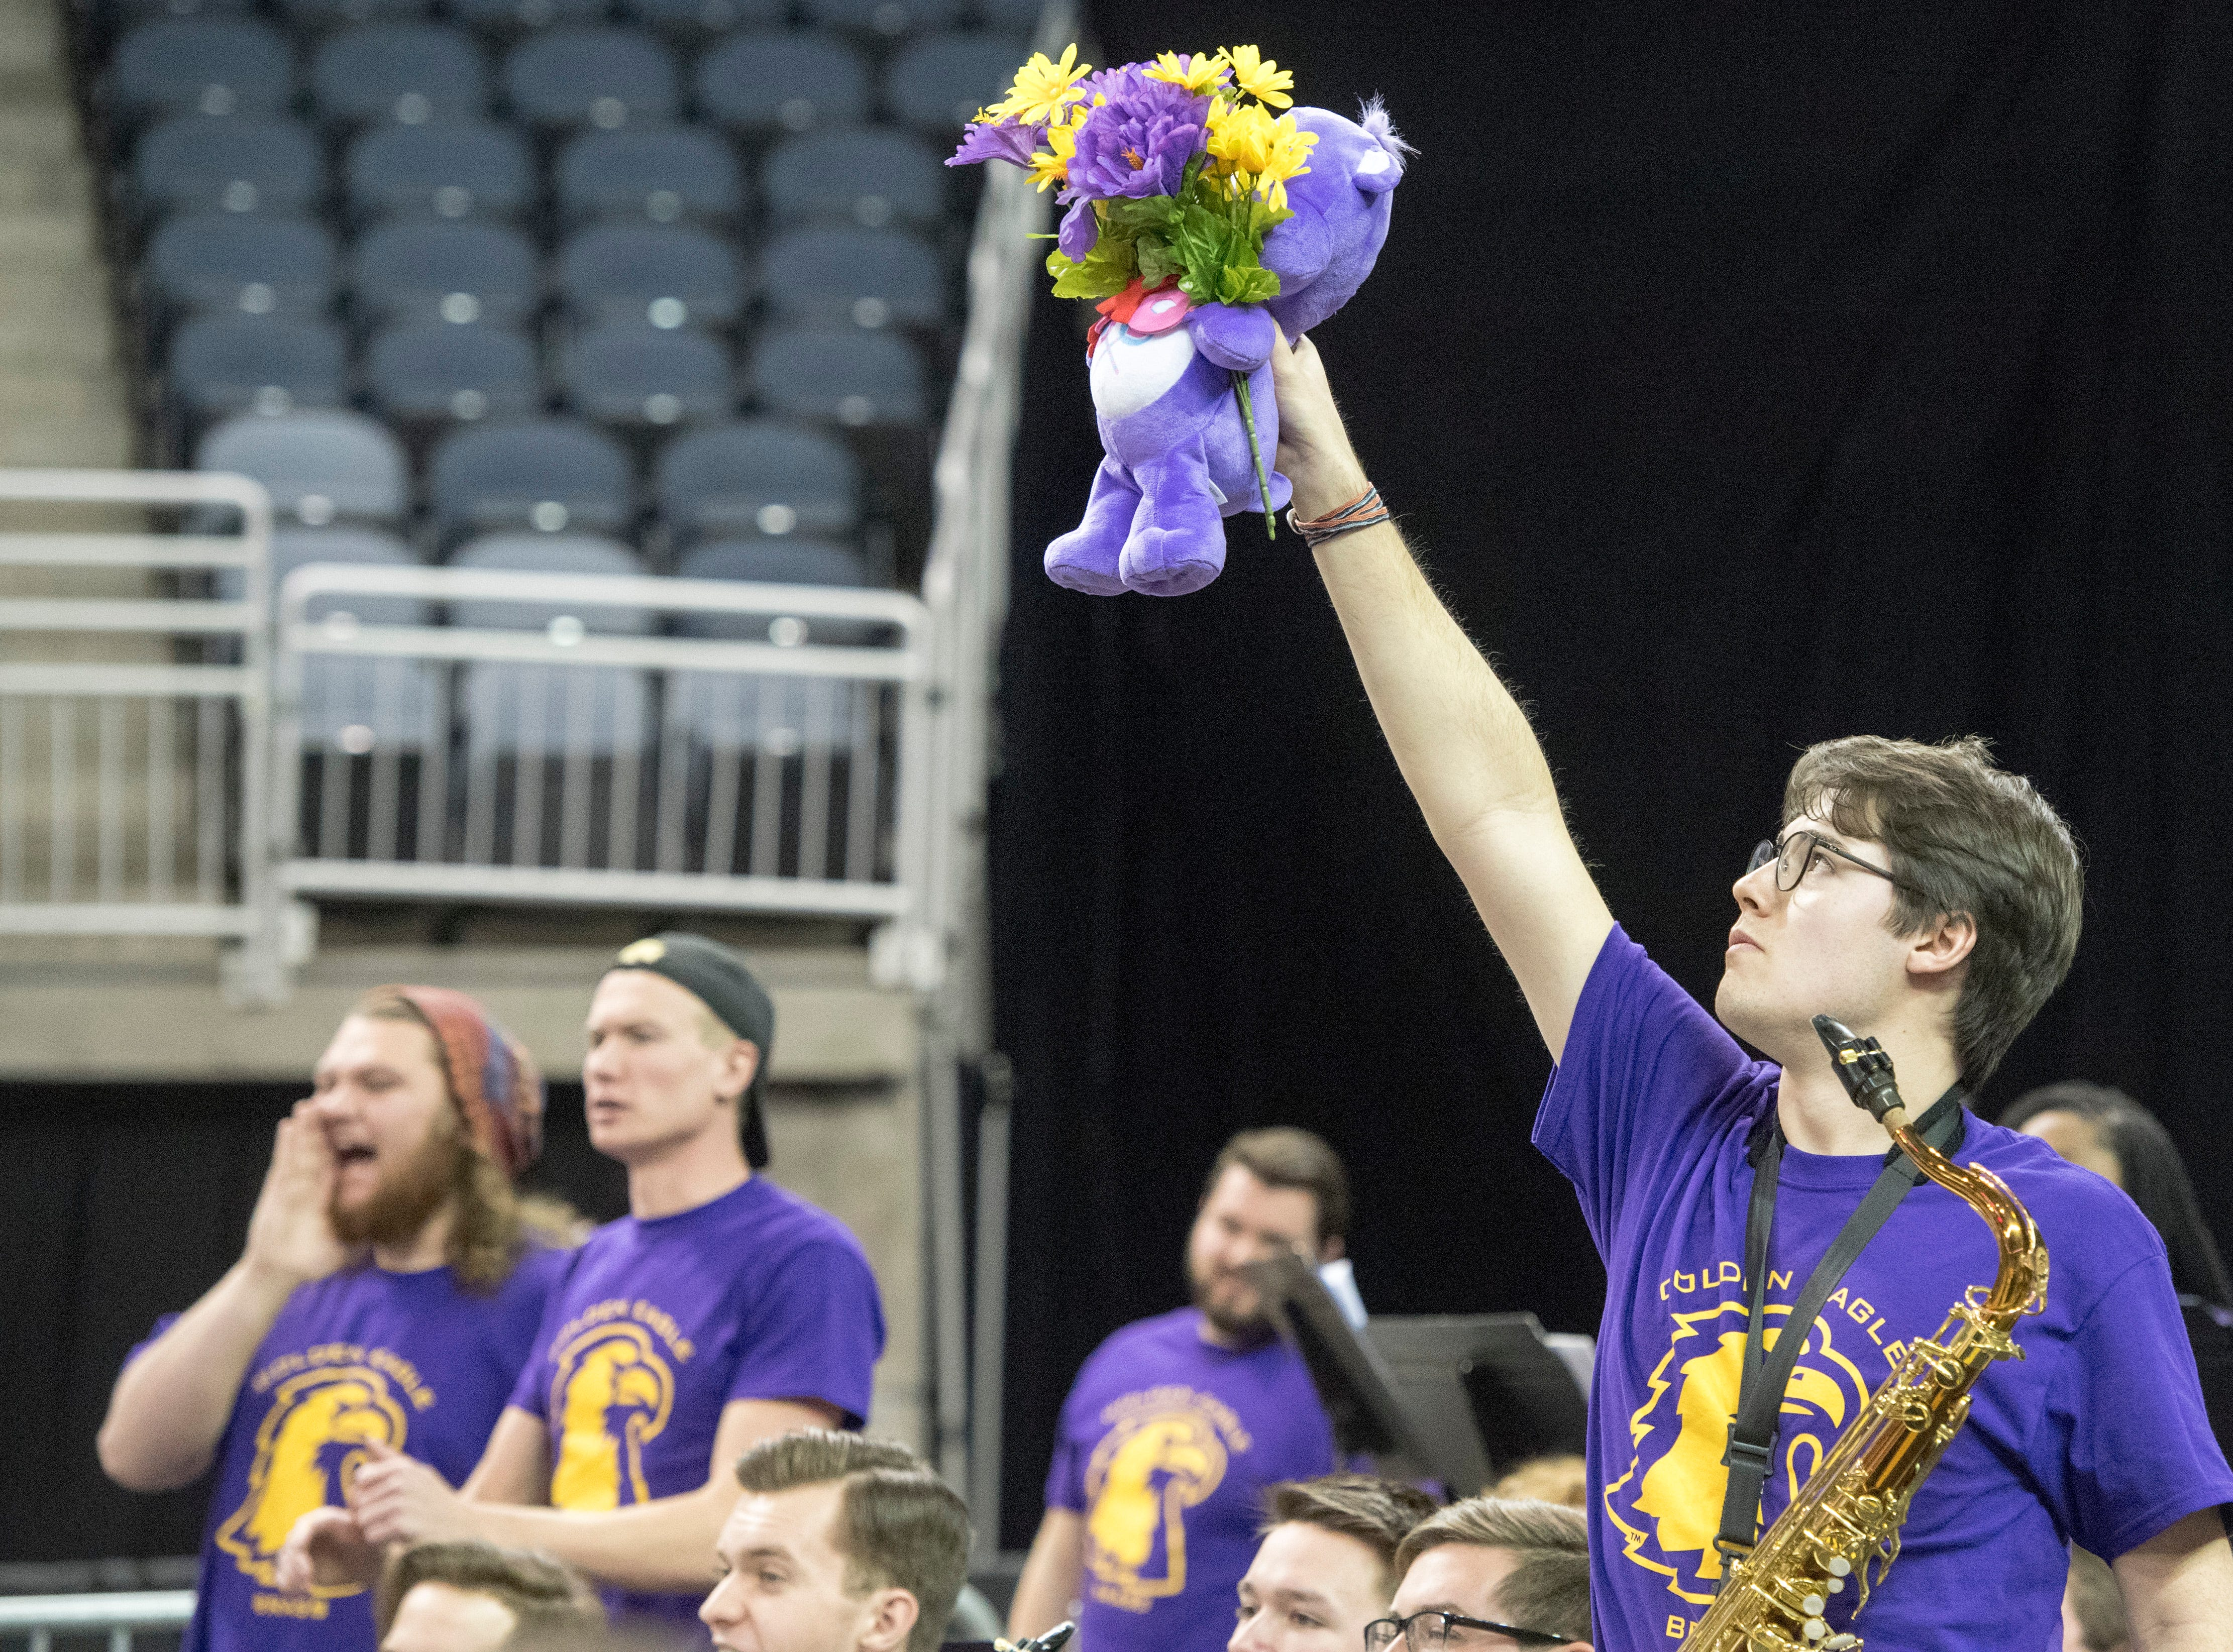 Tennessee Tech saxophone player Brandon Gilbert holds up a teddy bear with flowers to distract Austin Peay players at the free throw line during the Tennessee Tech vs Austin Peay game of the Ohio Valley Conference Tournament at the Ford Center in Evansville, Ind., Thursday, March 7, 2019.